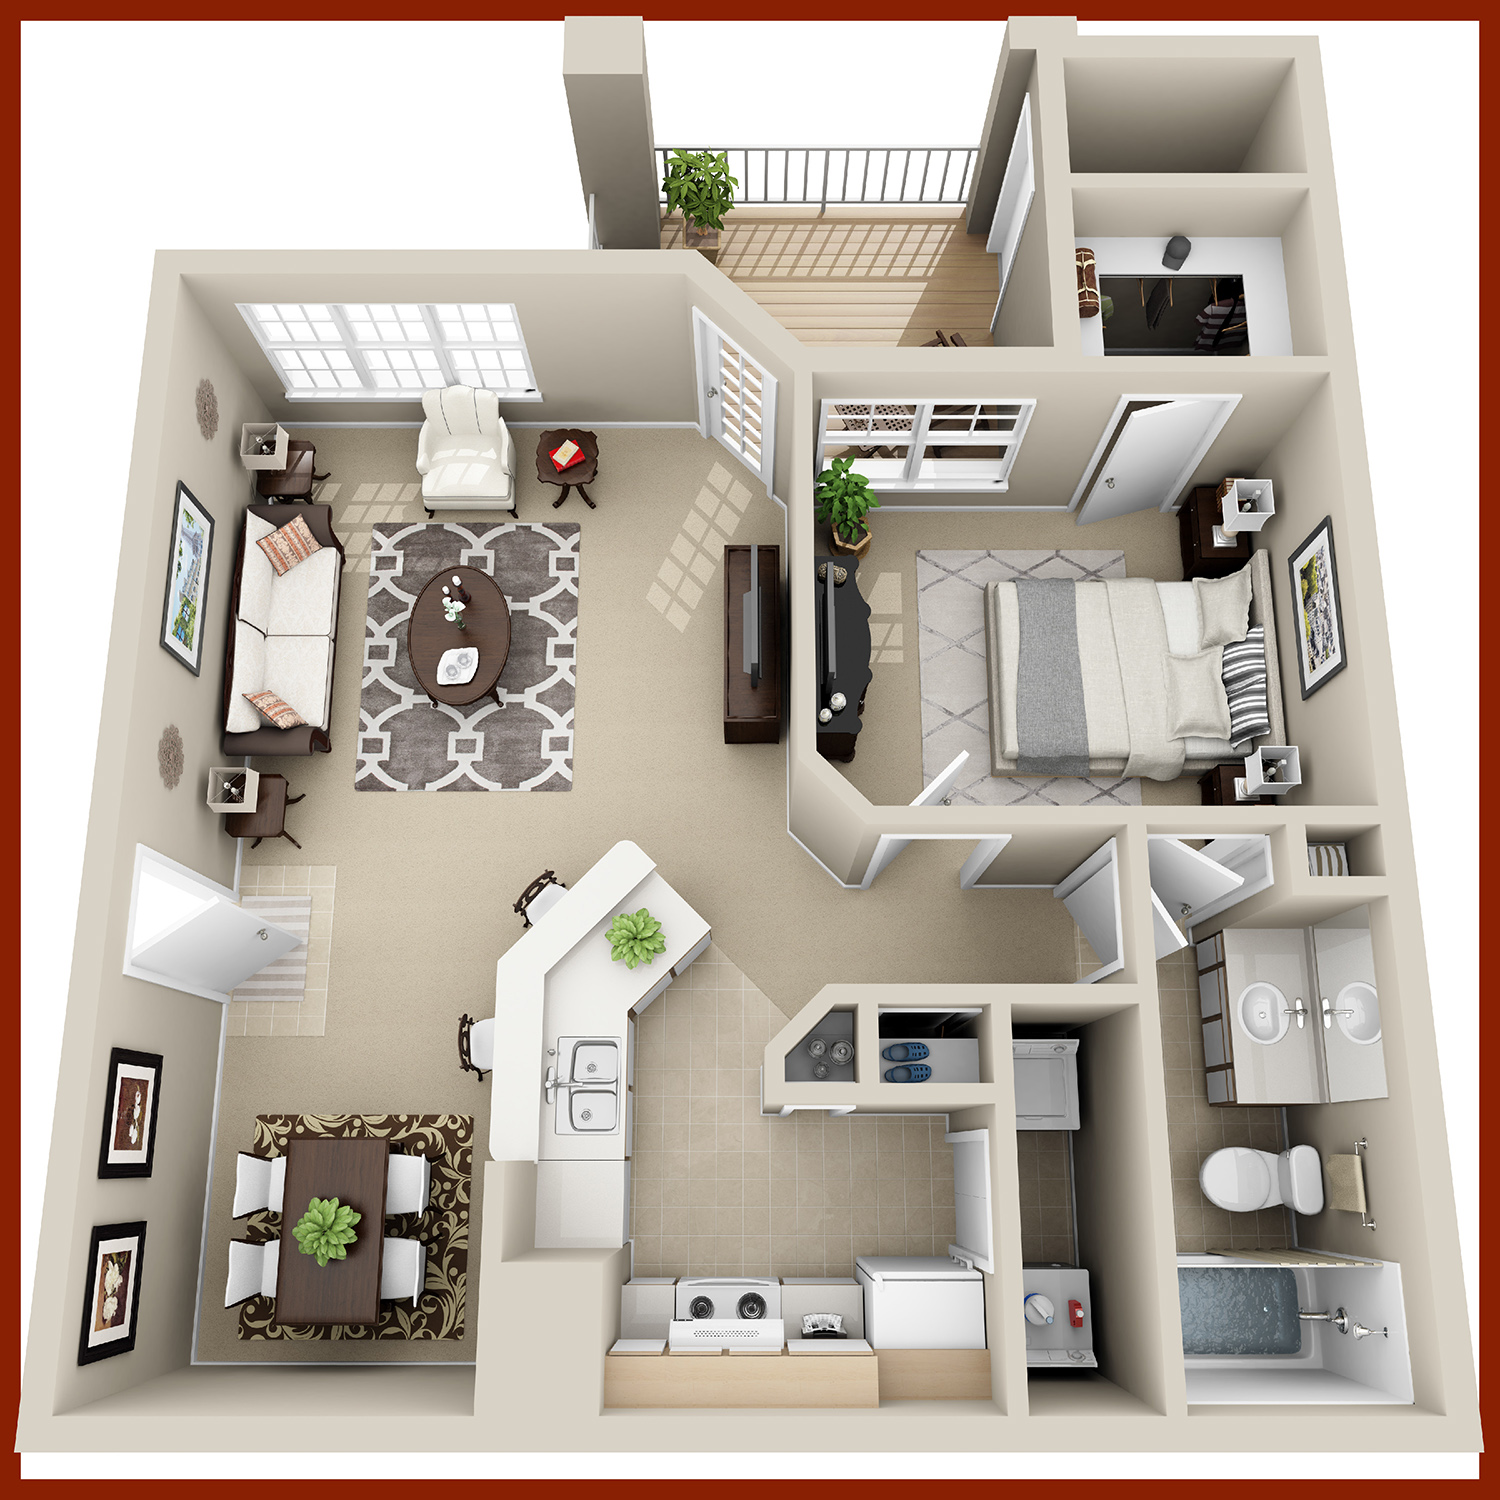 THE CYPRESS - One Bedroom & Bath, Dining Room | 763 sq. ft.